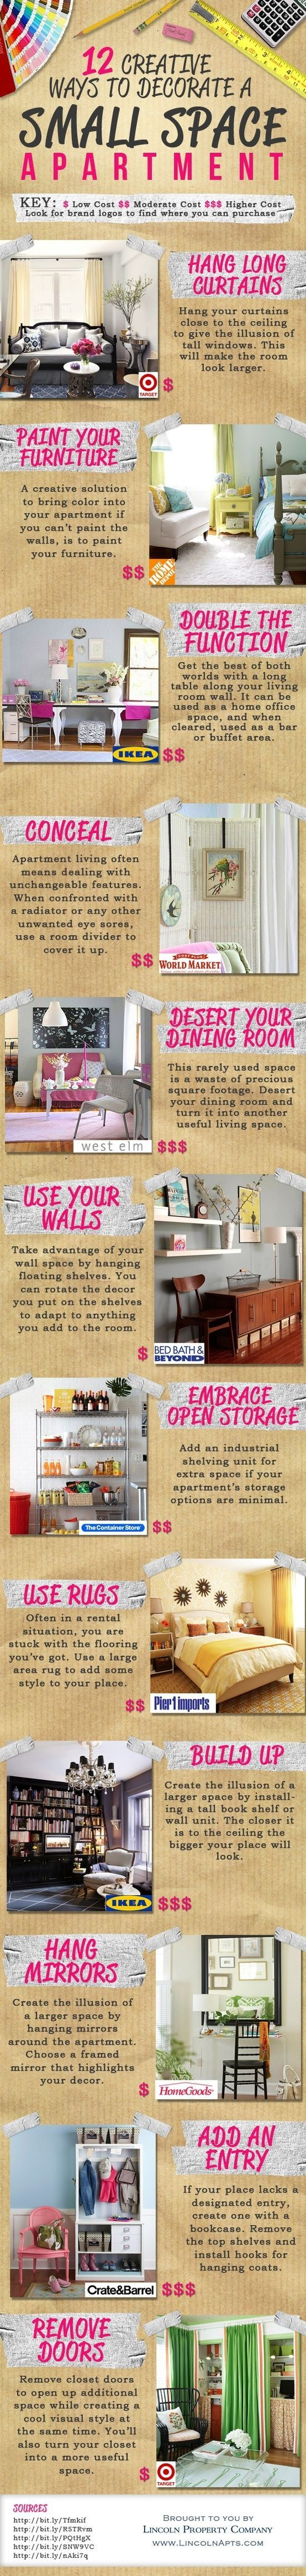 Small space ideas.